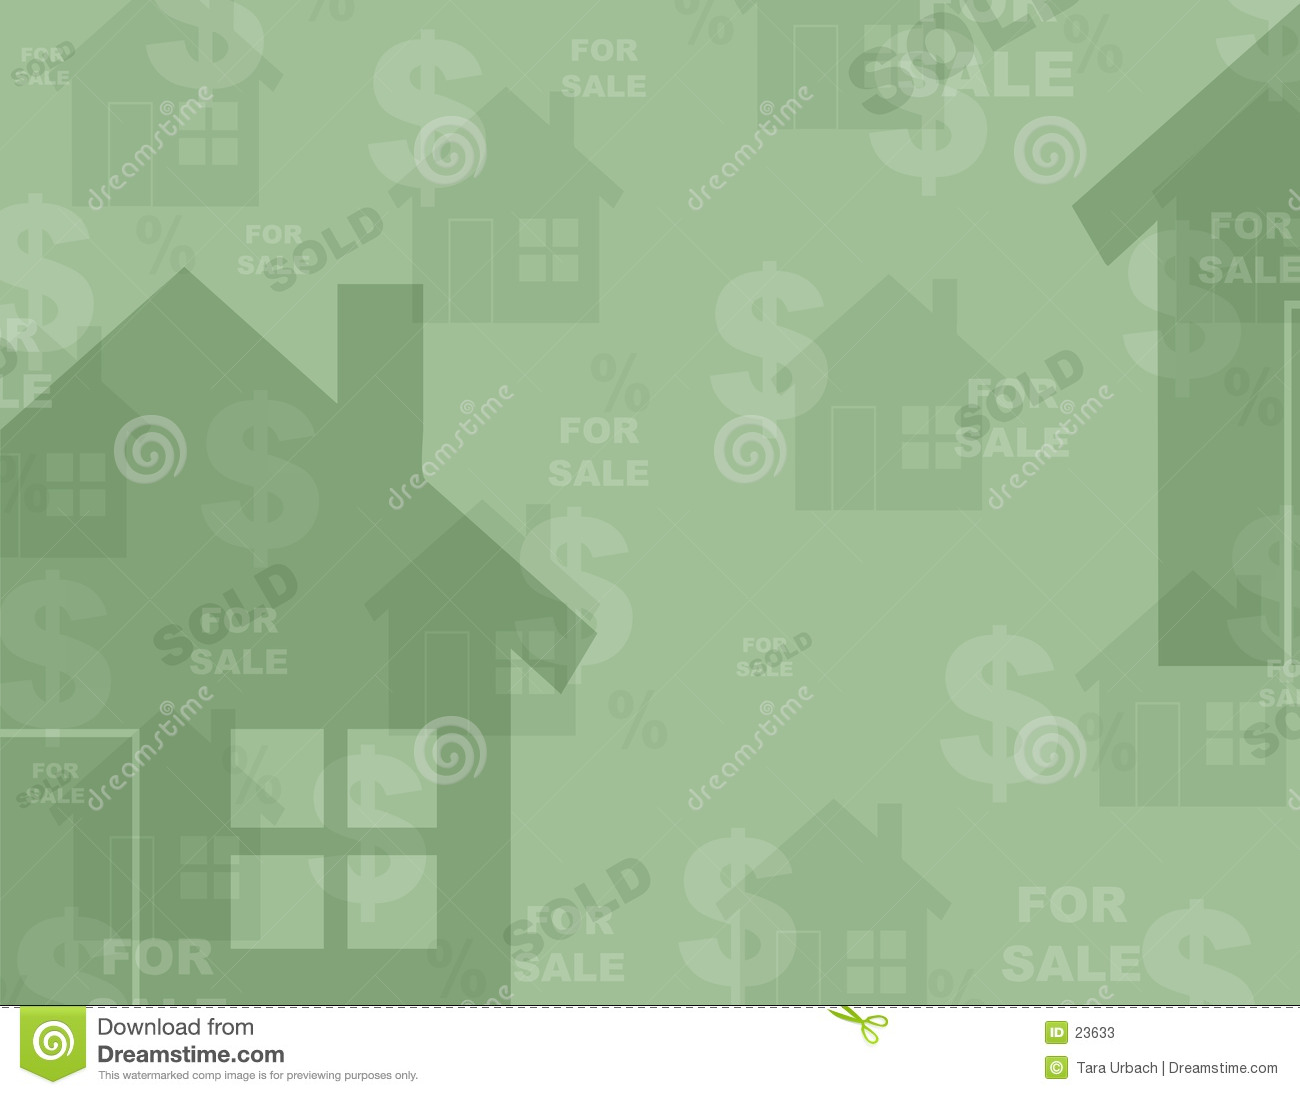 Stock Quotes Free Real Time: Real Estate Stock Photos